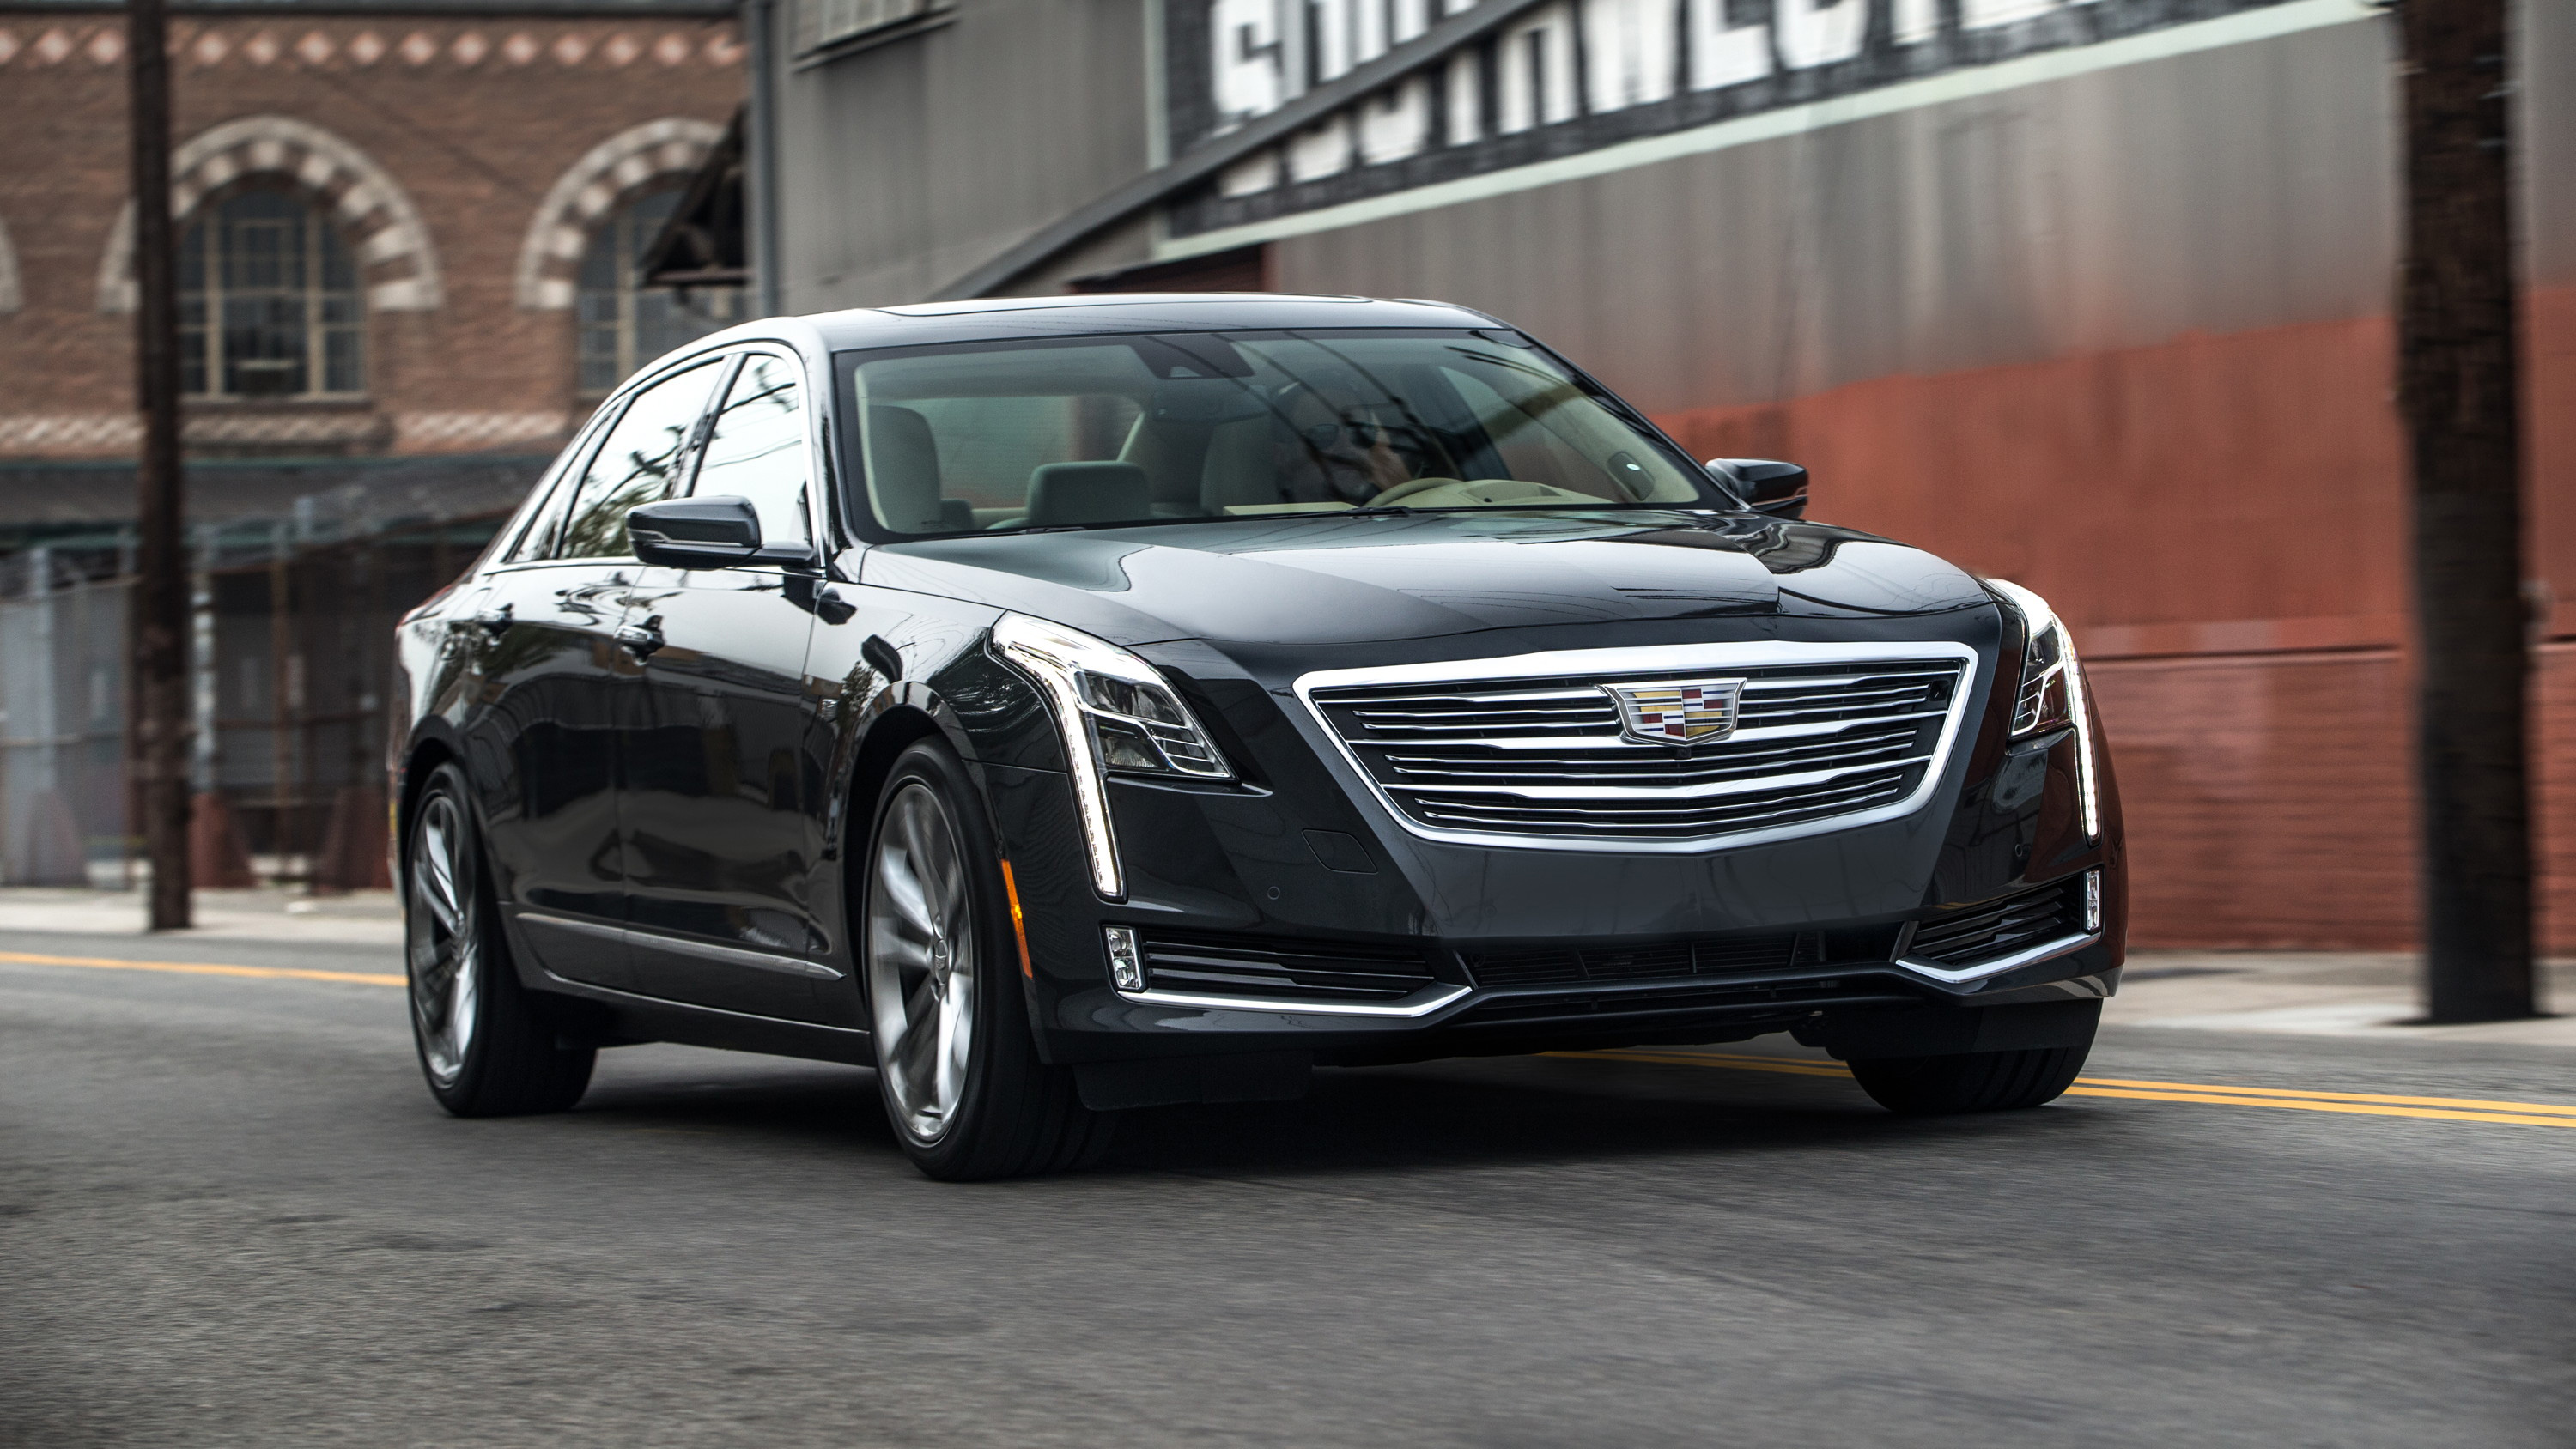 rumors there generation new for exclusive sport vsport will officials be own engine v its next luxury unleashes to shared the have news been it though cadillac brand with insist